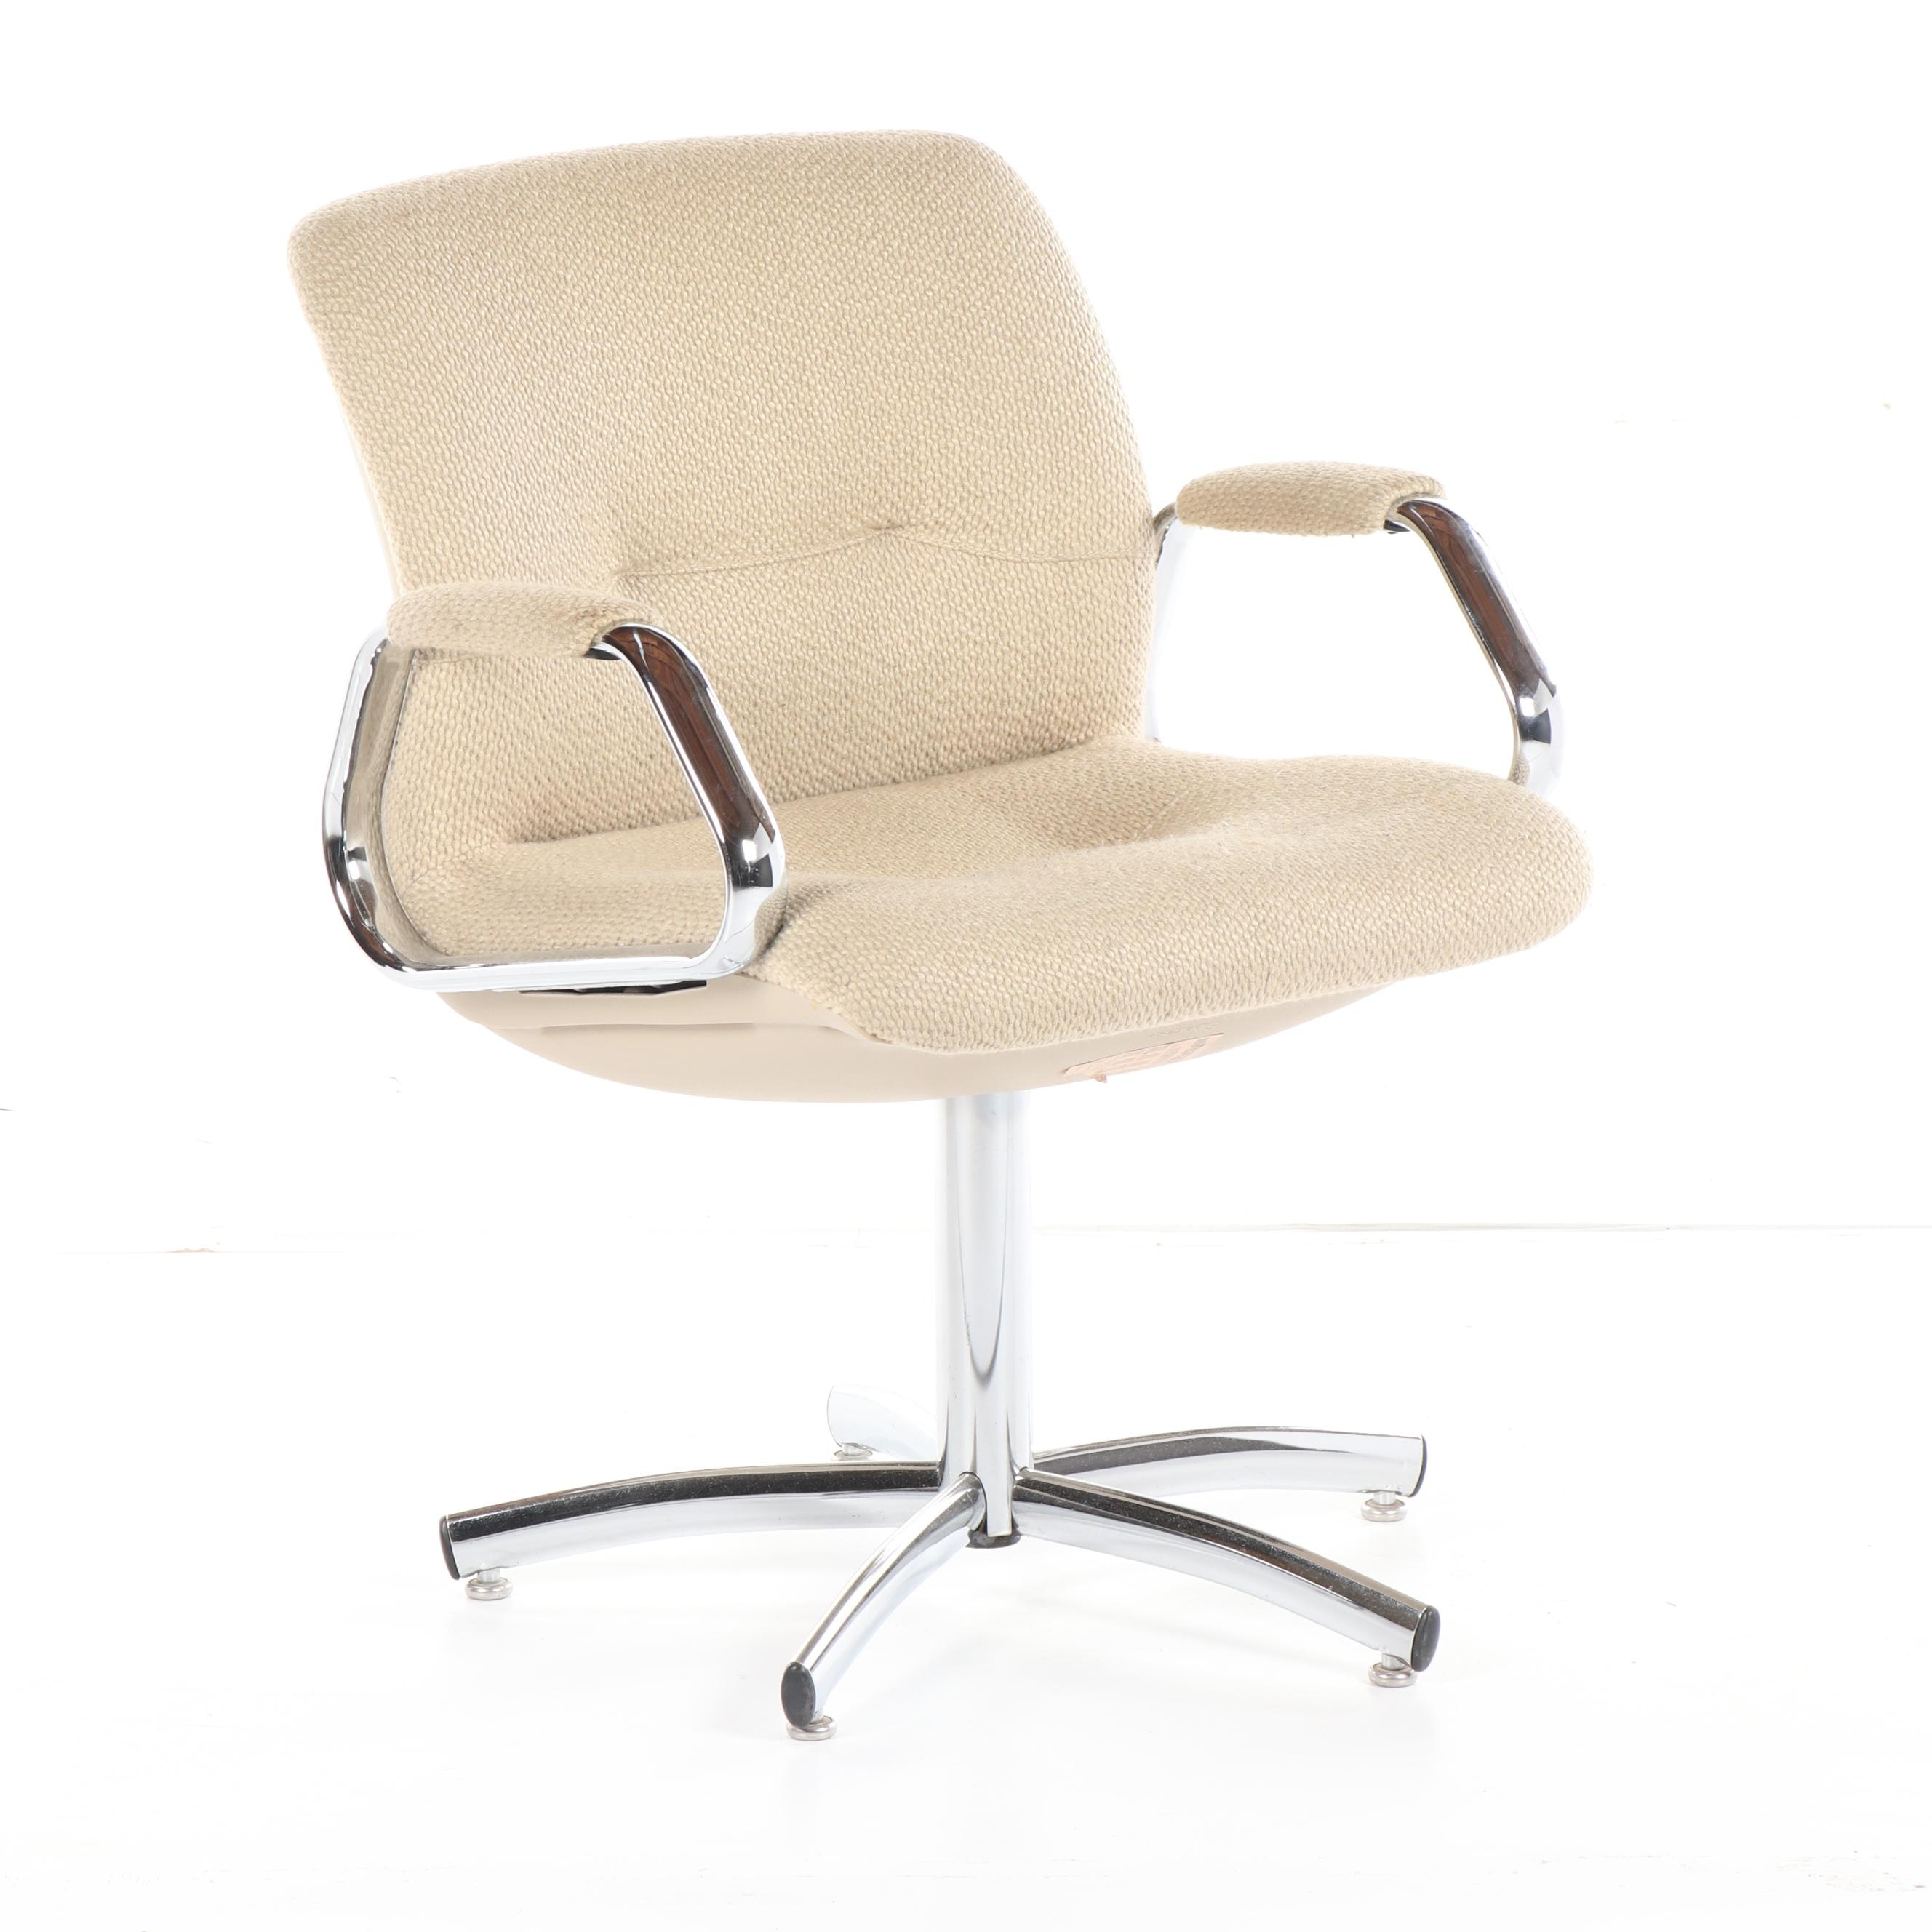 Mid Century Modern Upholstered Metal Office Chair by Steelcase, 20th Century